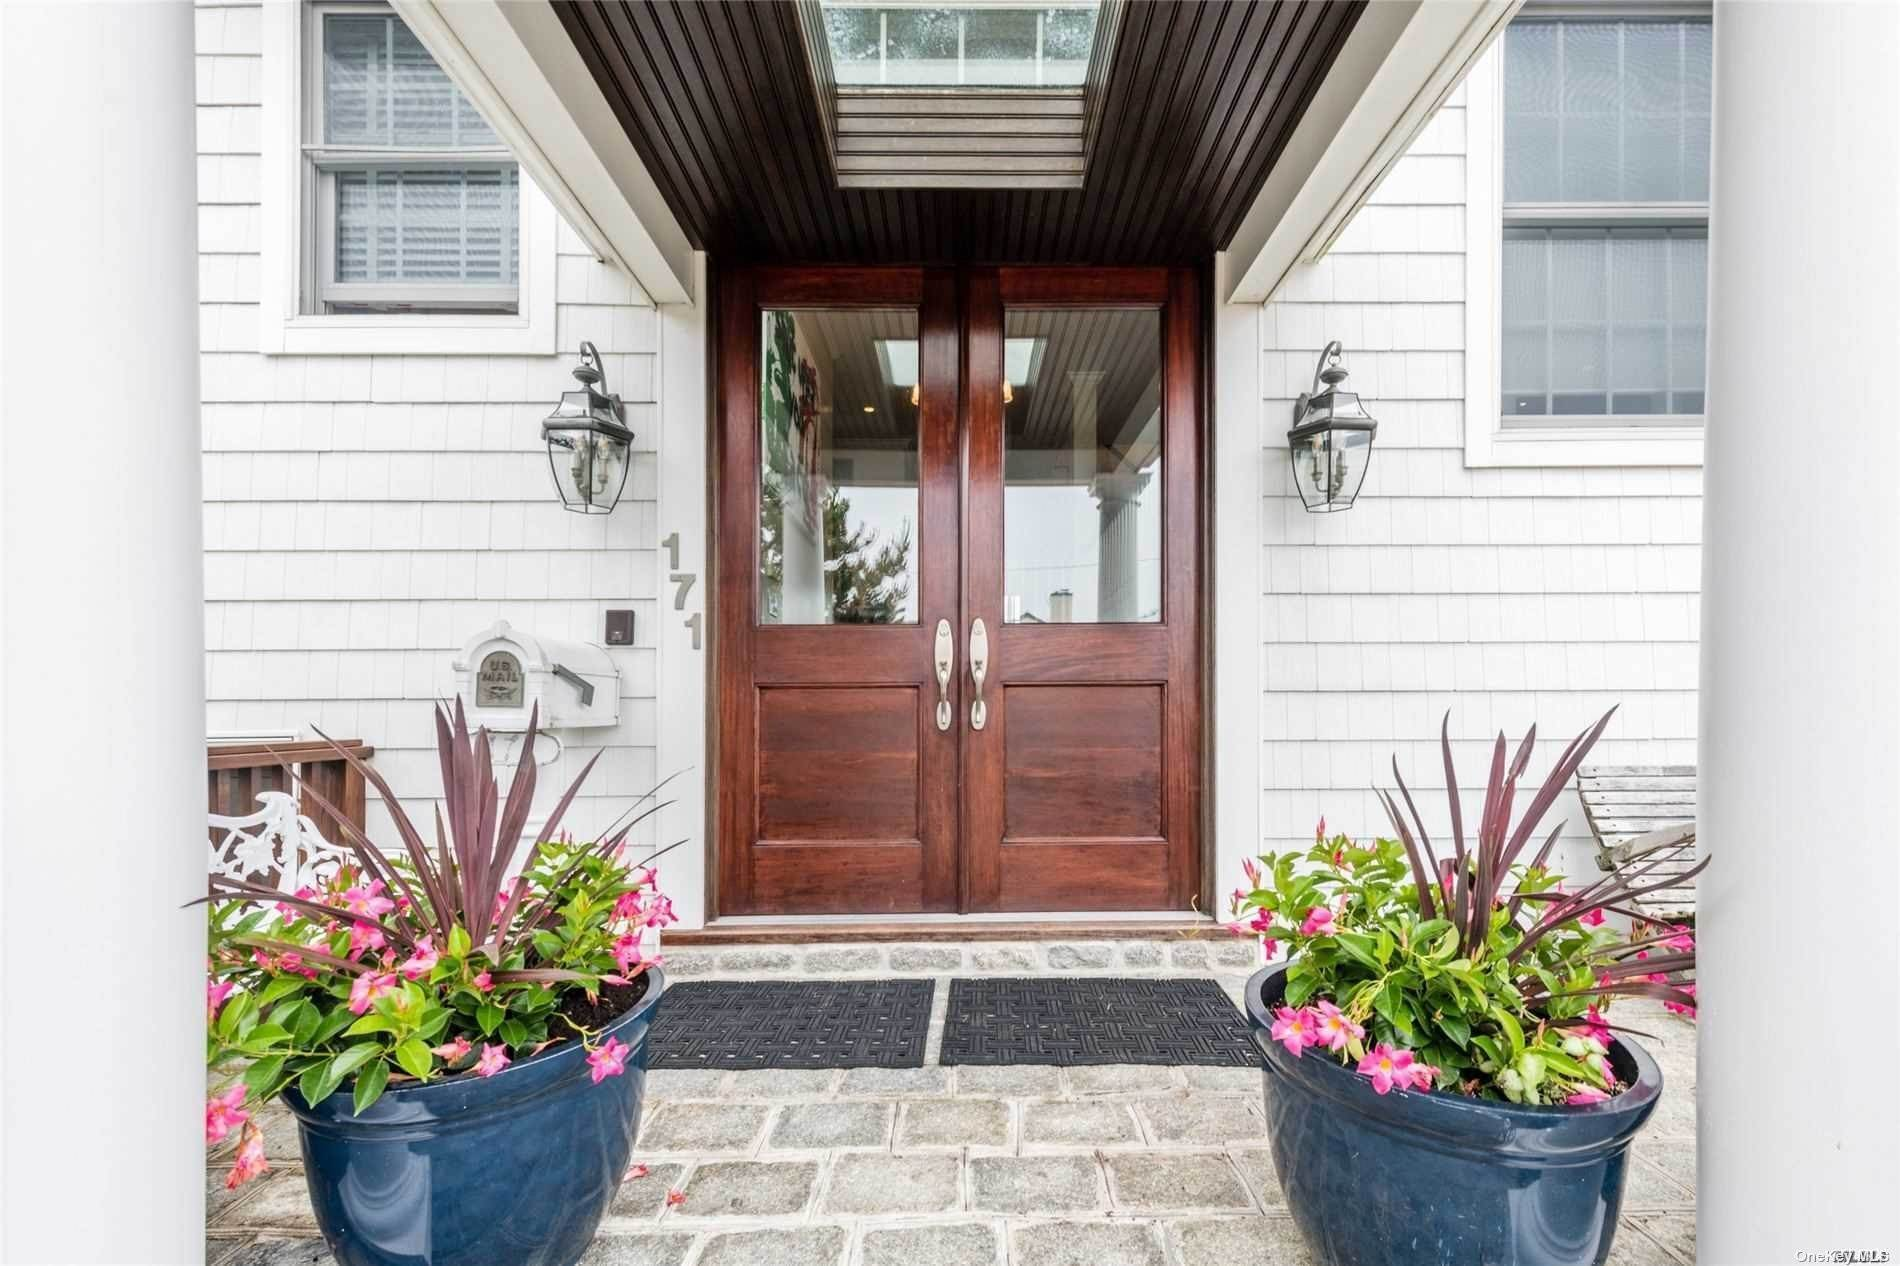 Residential for Sale at 171 Albany Boulevard Atlantic Beach, New York 11509 United States